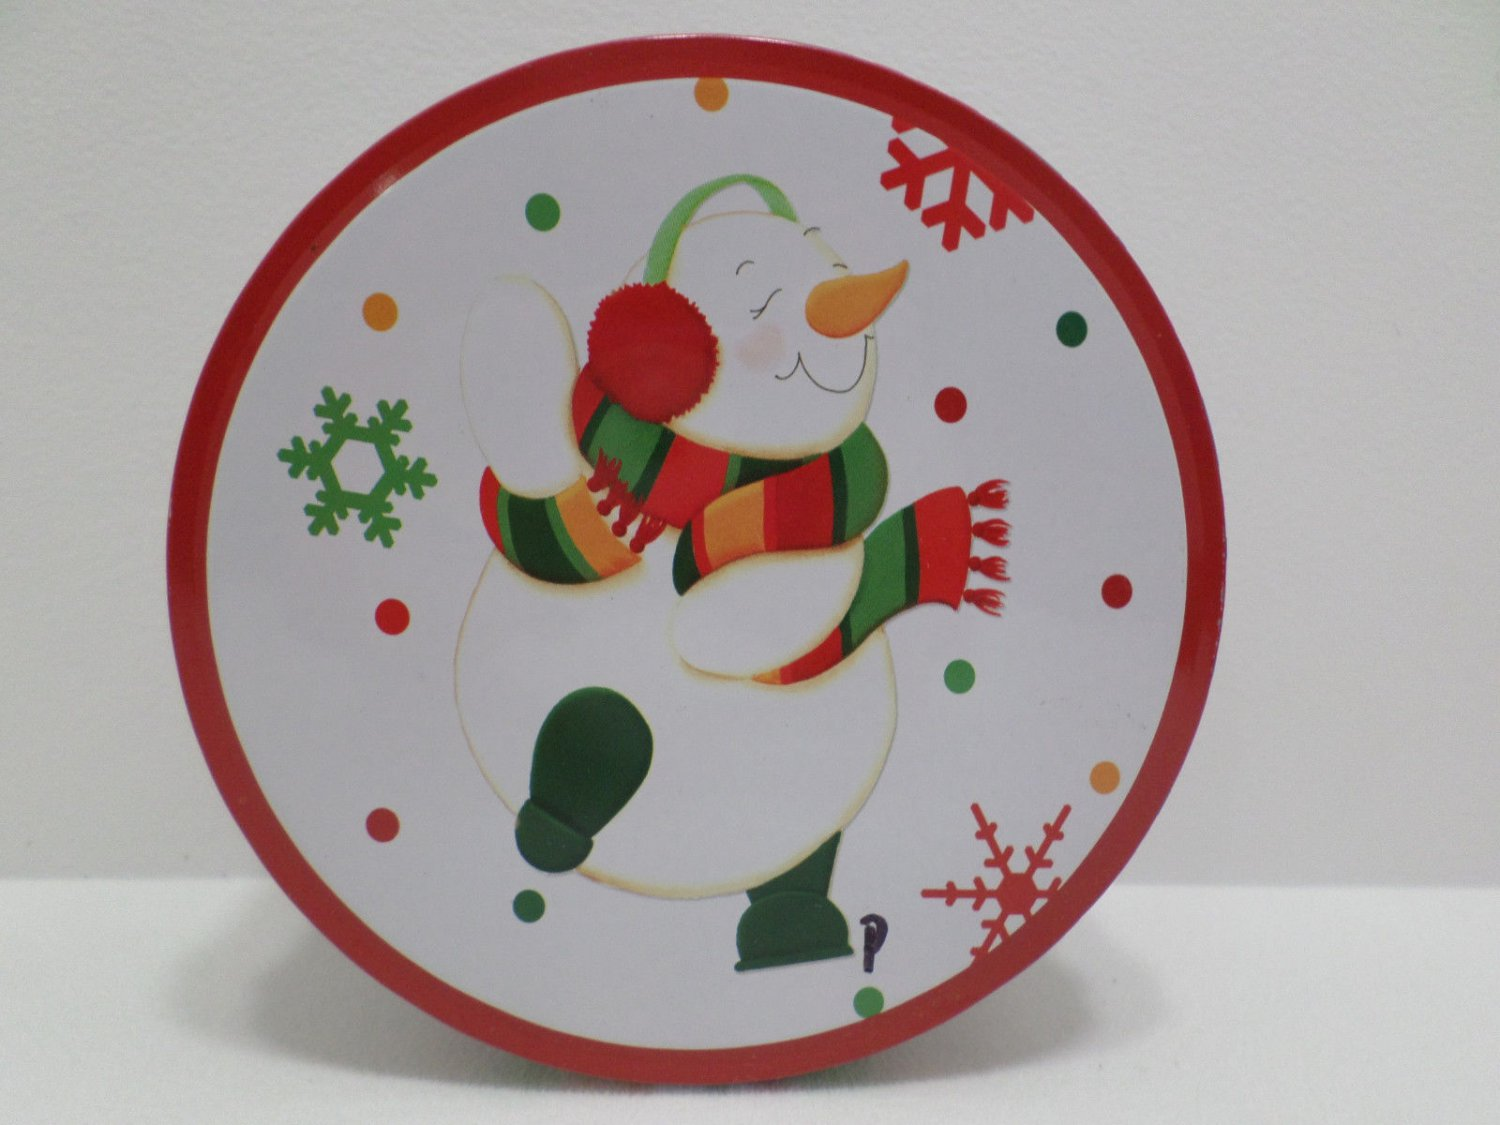 Christmas tin snowman designed by Jan Shade Beach Lindy Bowman 2001